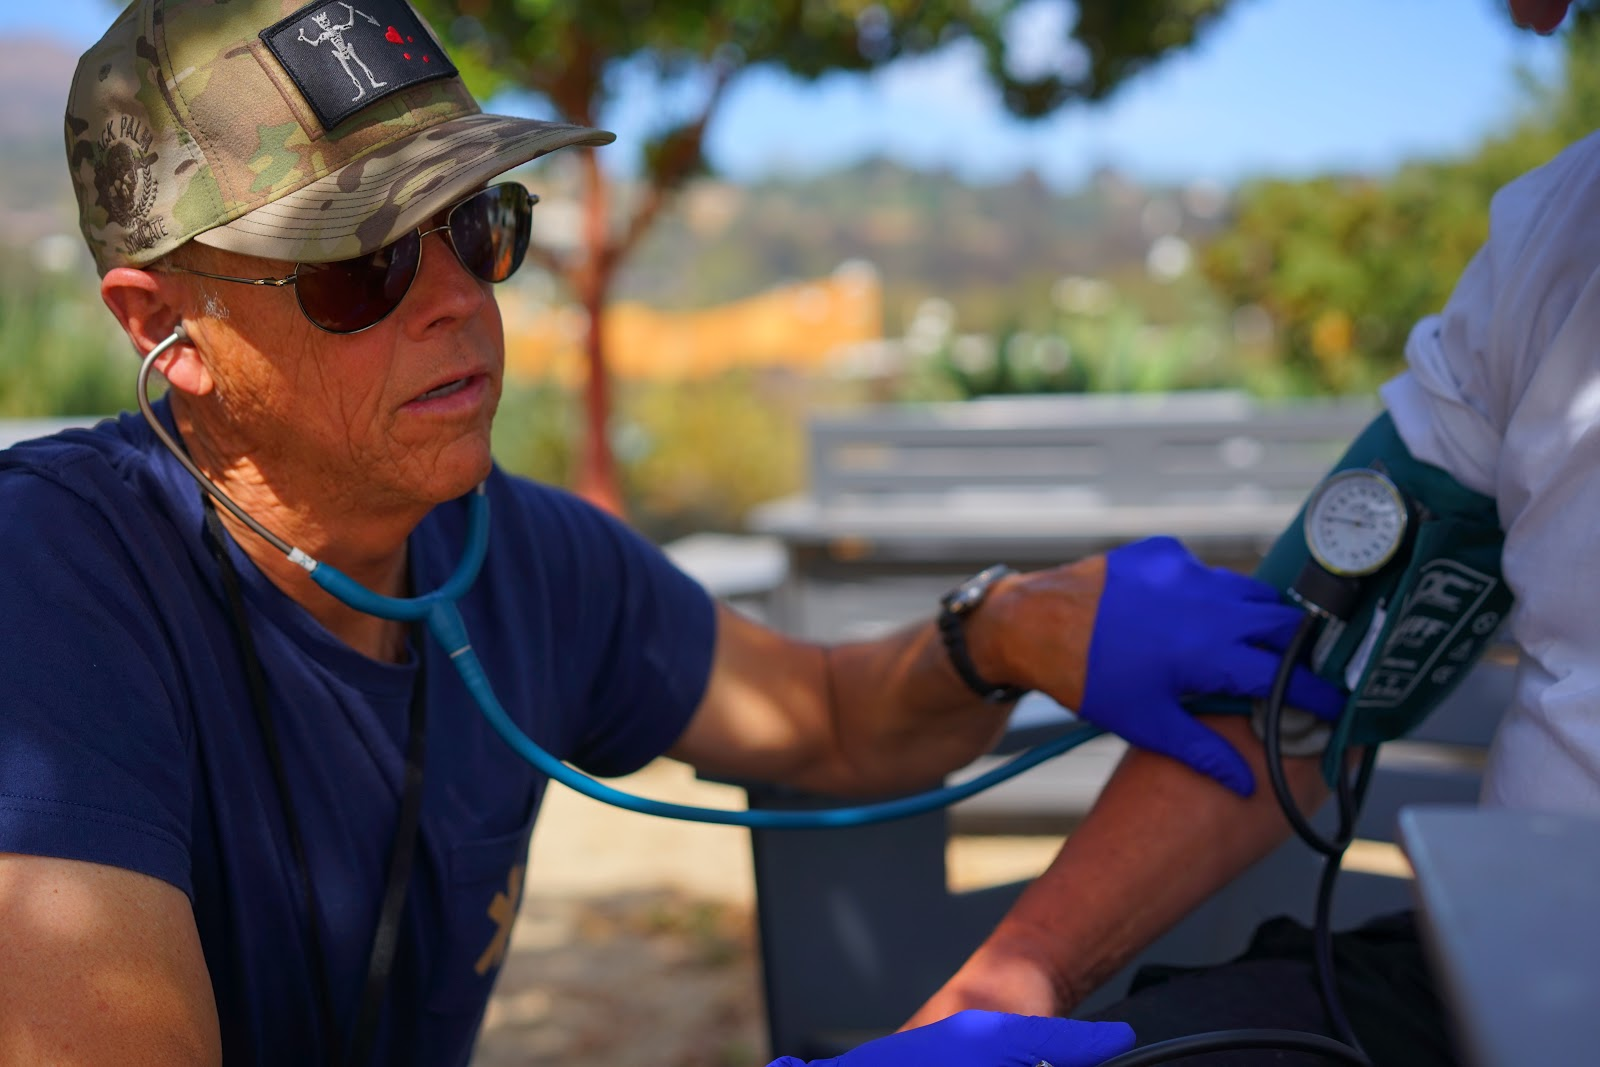 Figure 18.  Peter Miller, street medic, checks vital signs for a patient in the field. Taken by Dr. Coley King of Venice Family Clinic.